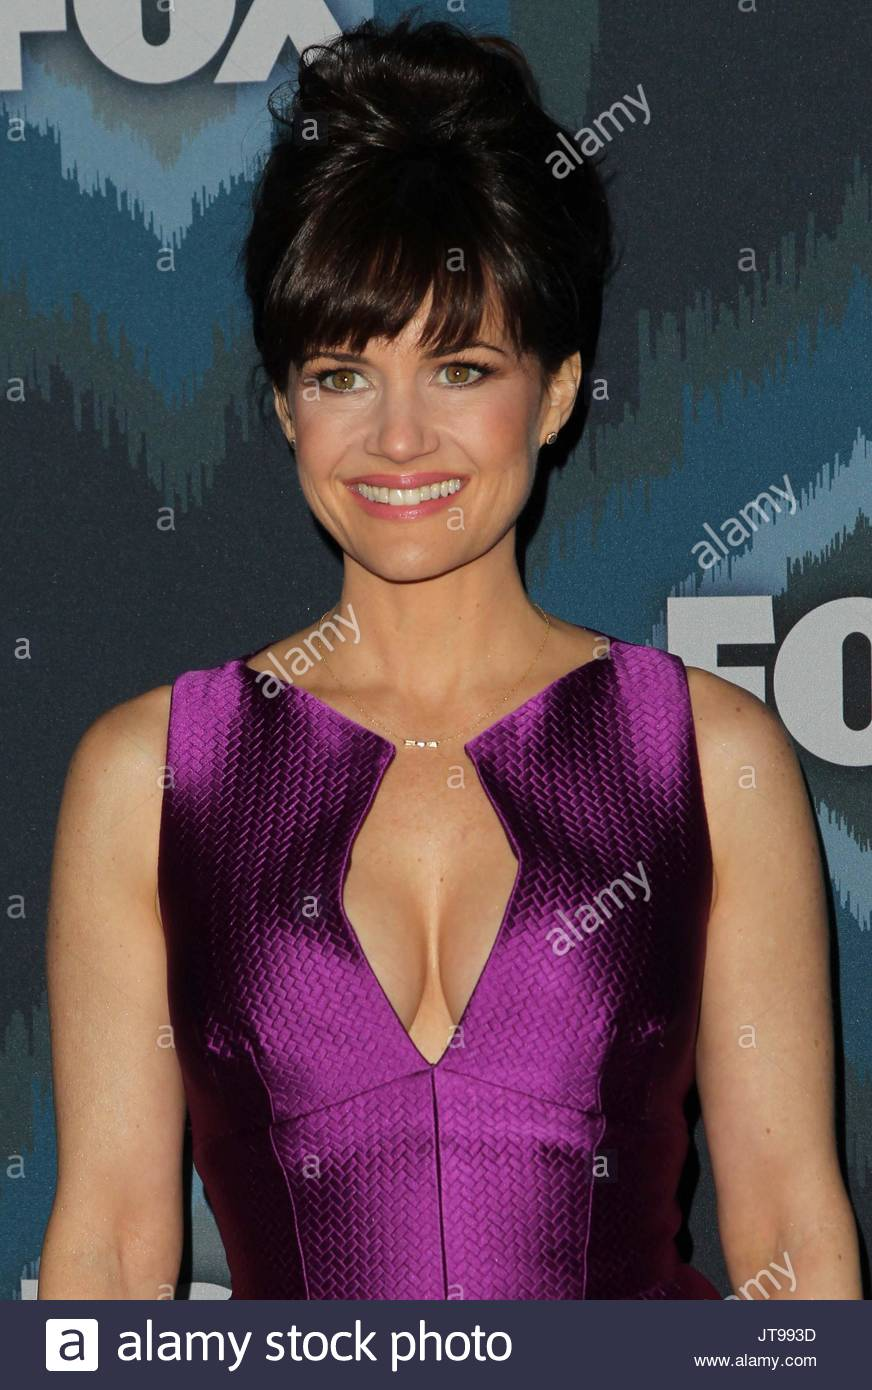 Carla gugino see through think